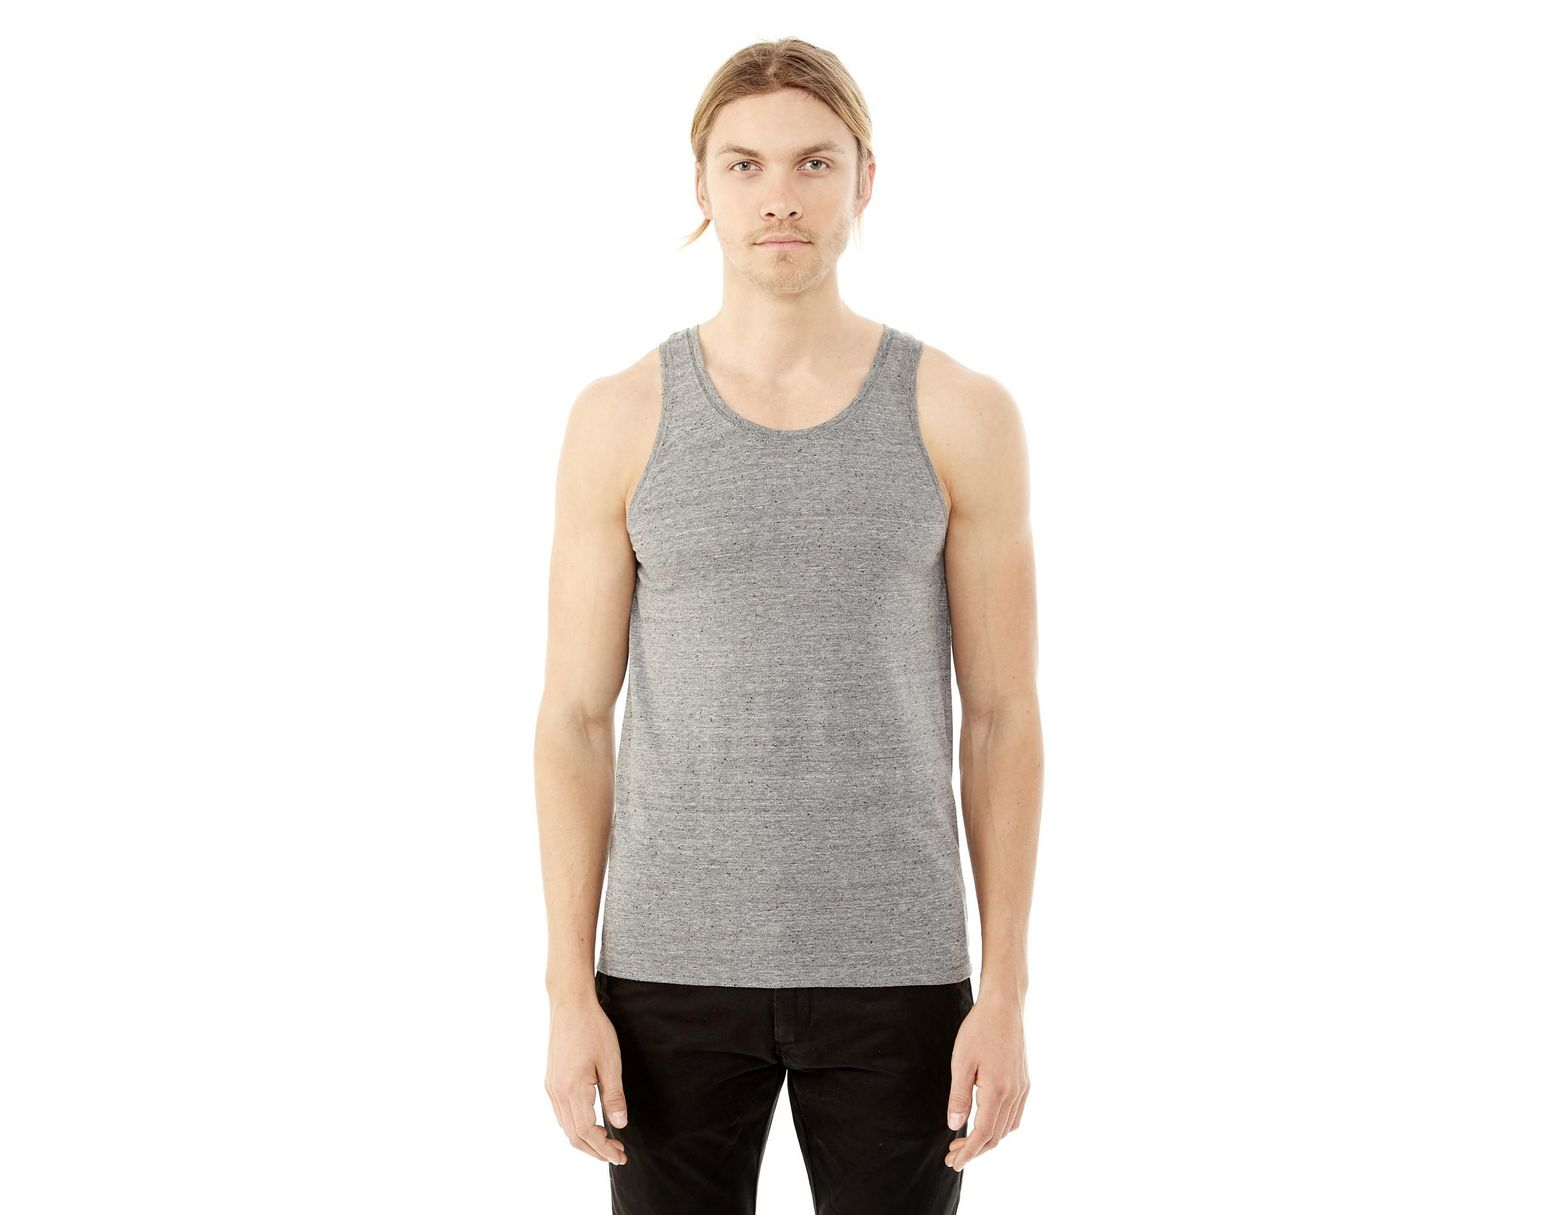 11d8c9adb Alternative Apparel Boathouse Textured Tank Top in Gray for Men - Save 56%  - Lyst